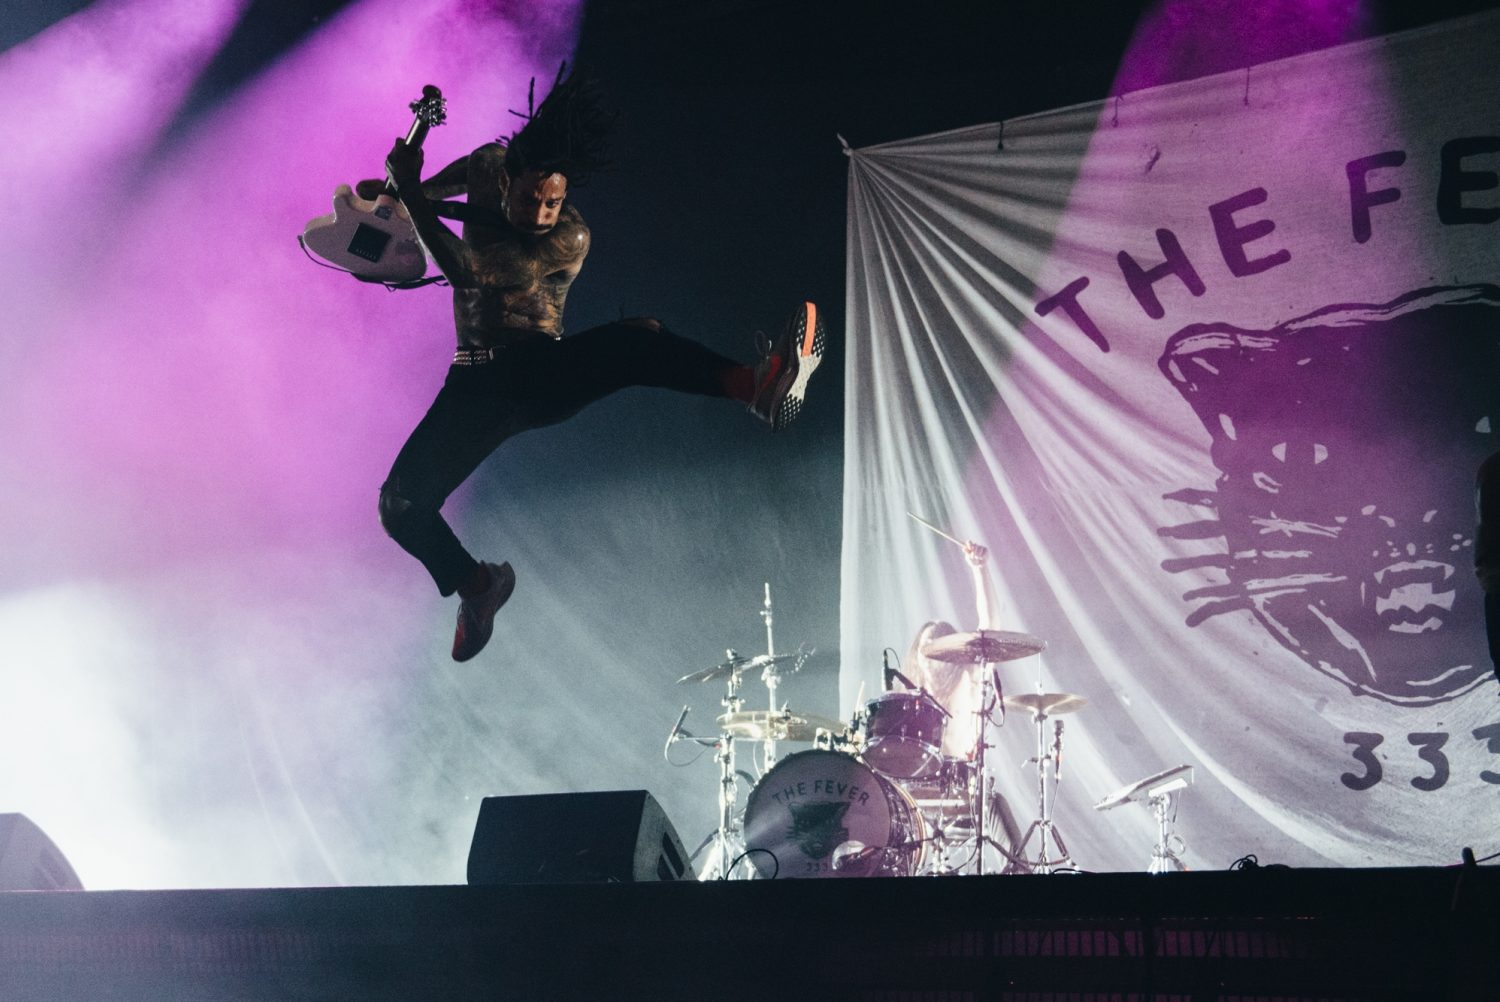 Bring Me The Horizon reclaim their throne at Ally Pally